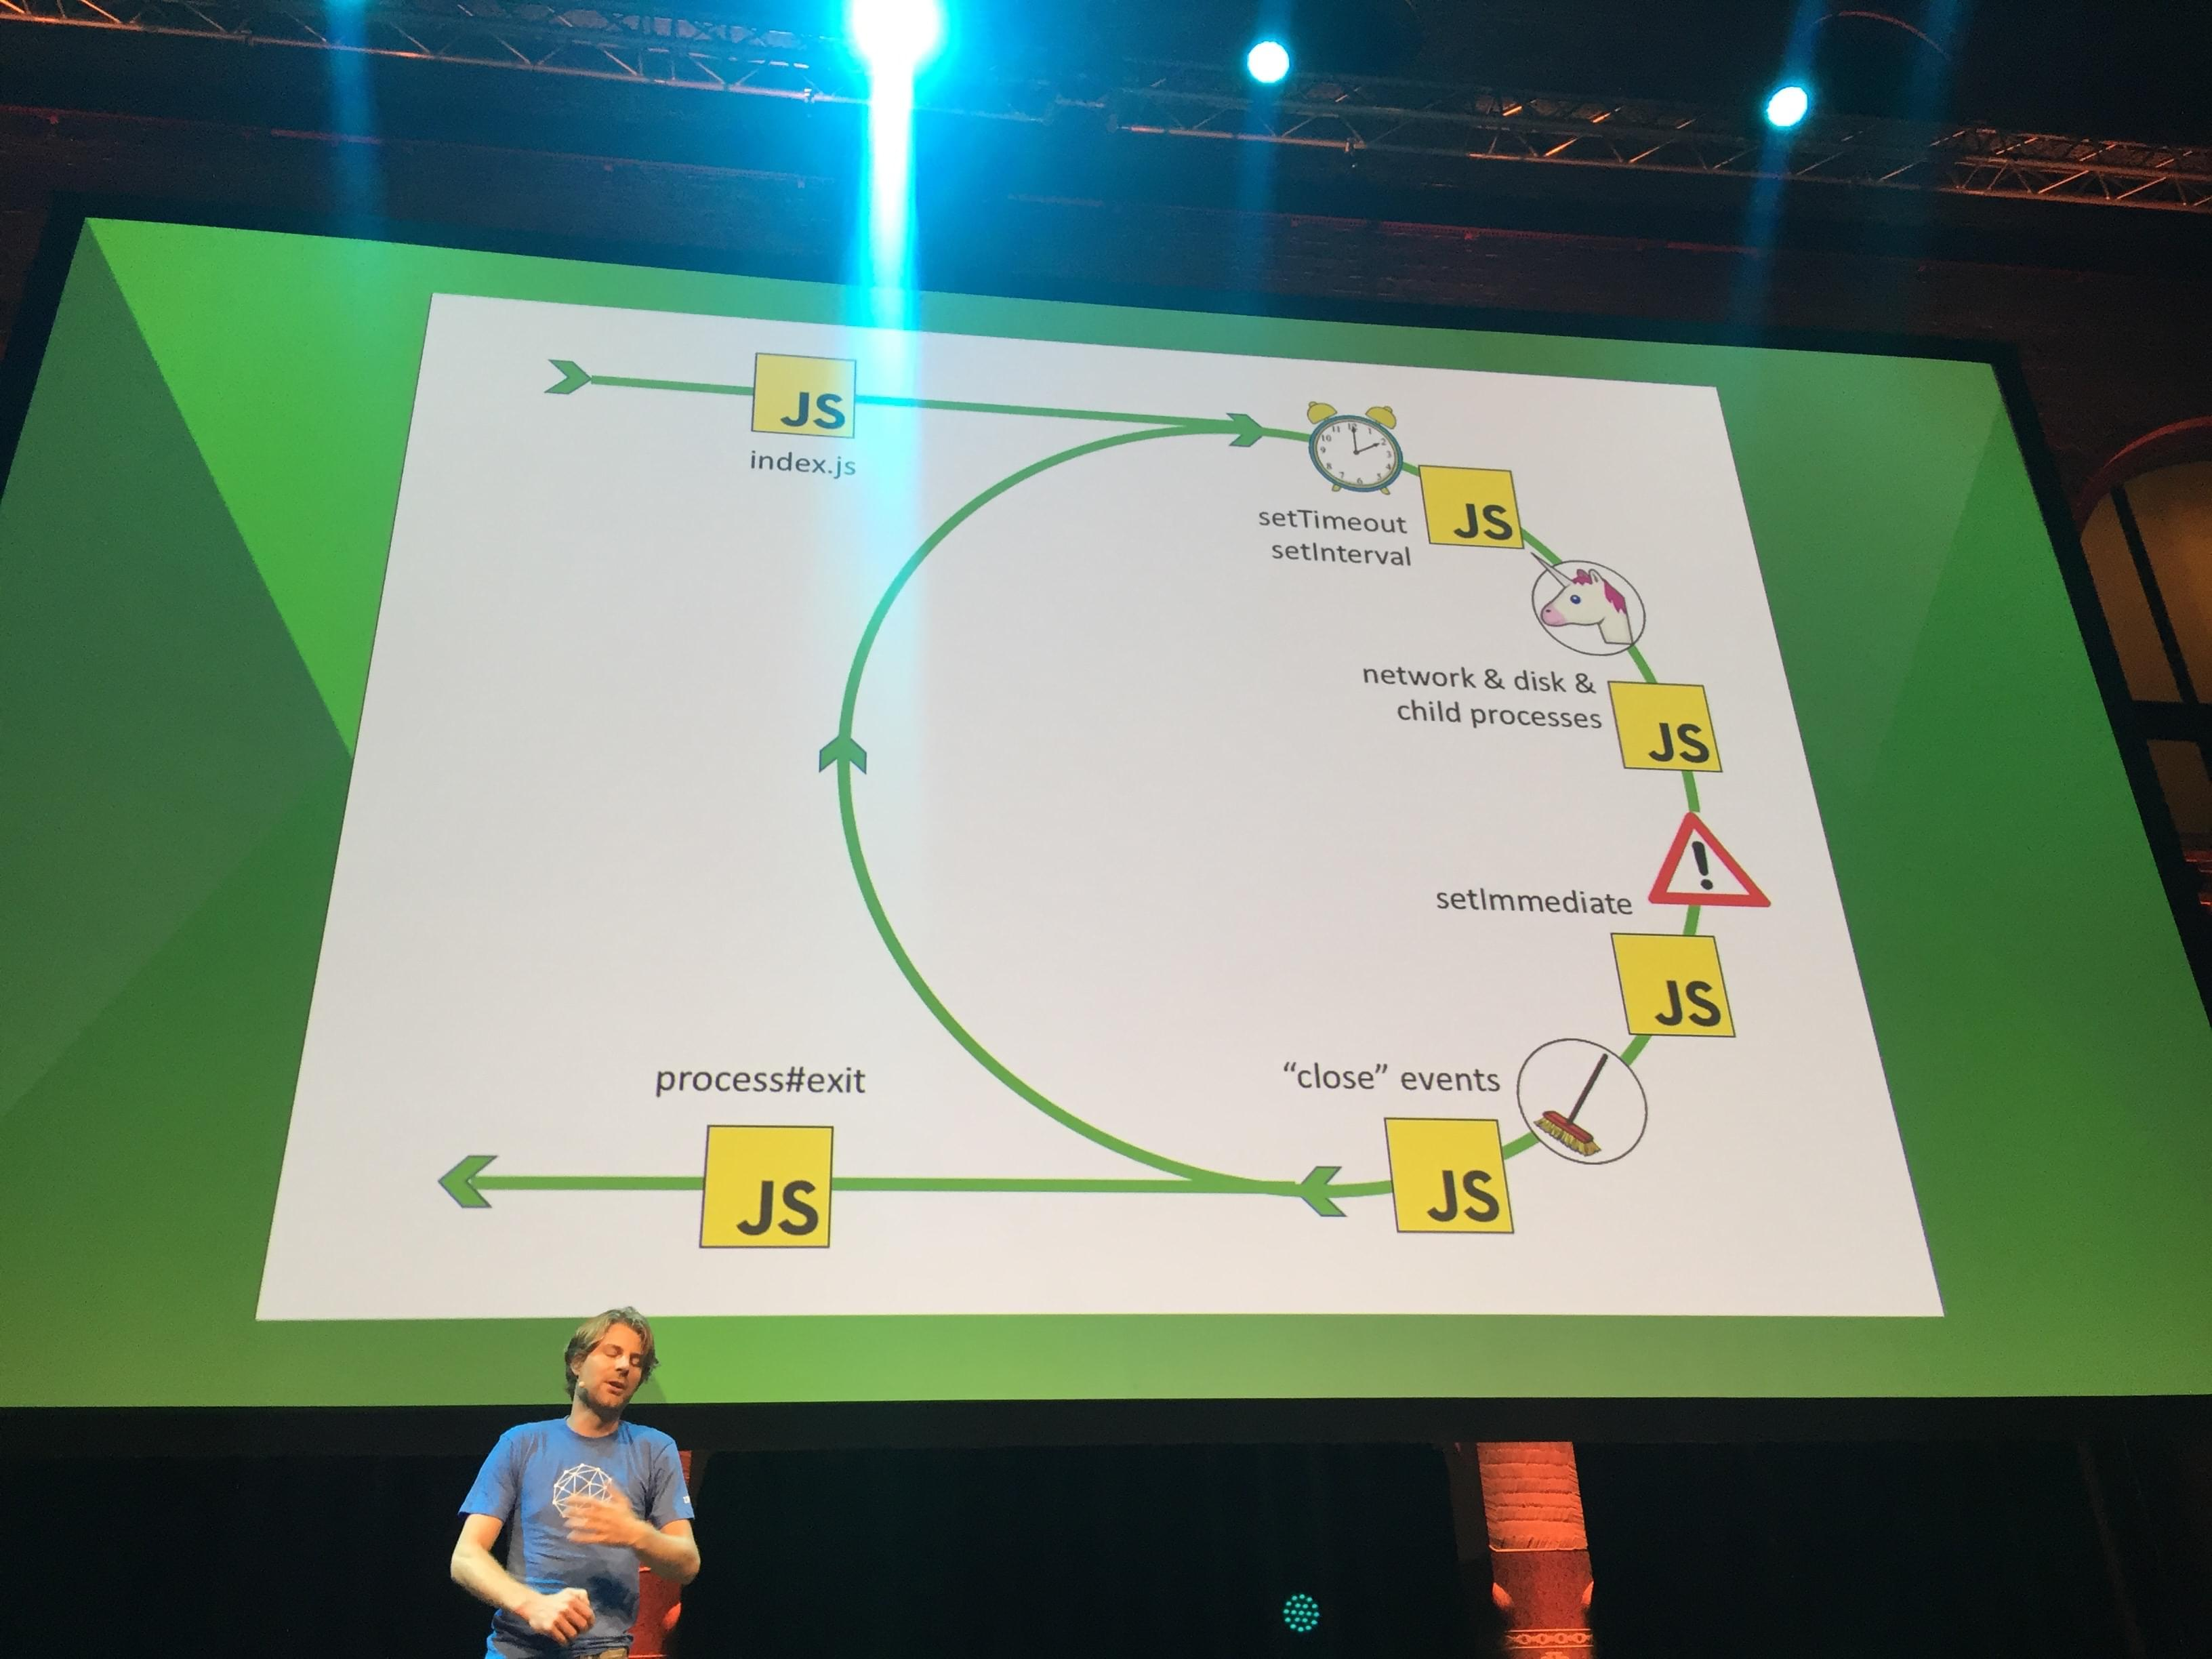 The event loop